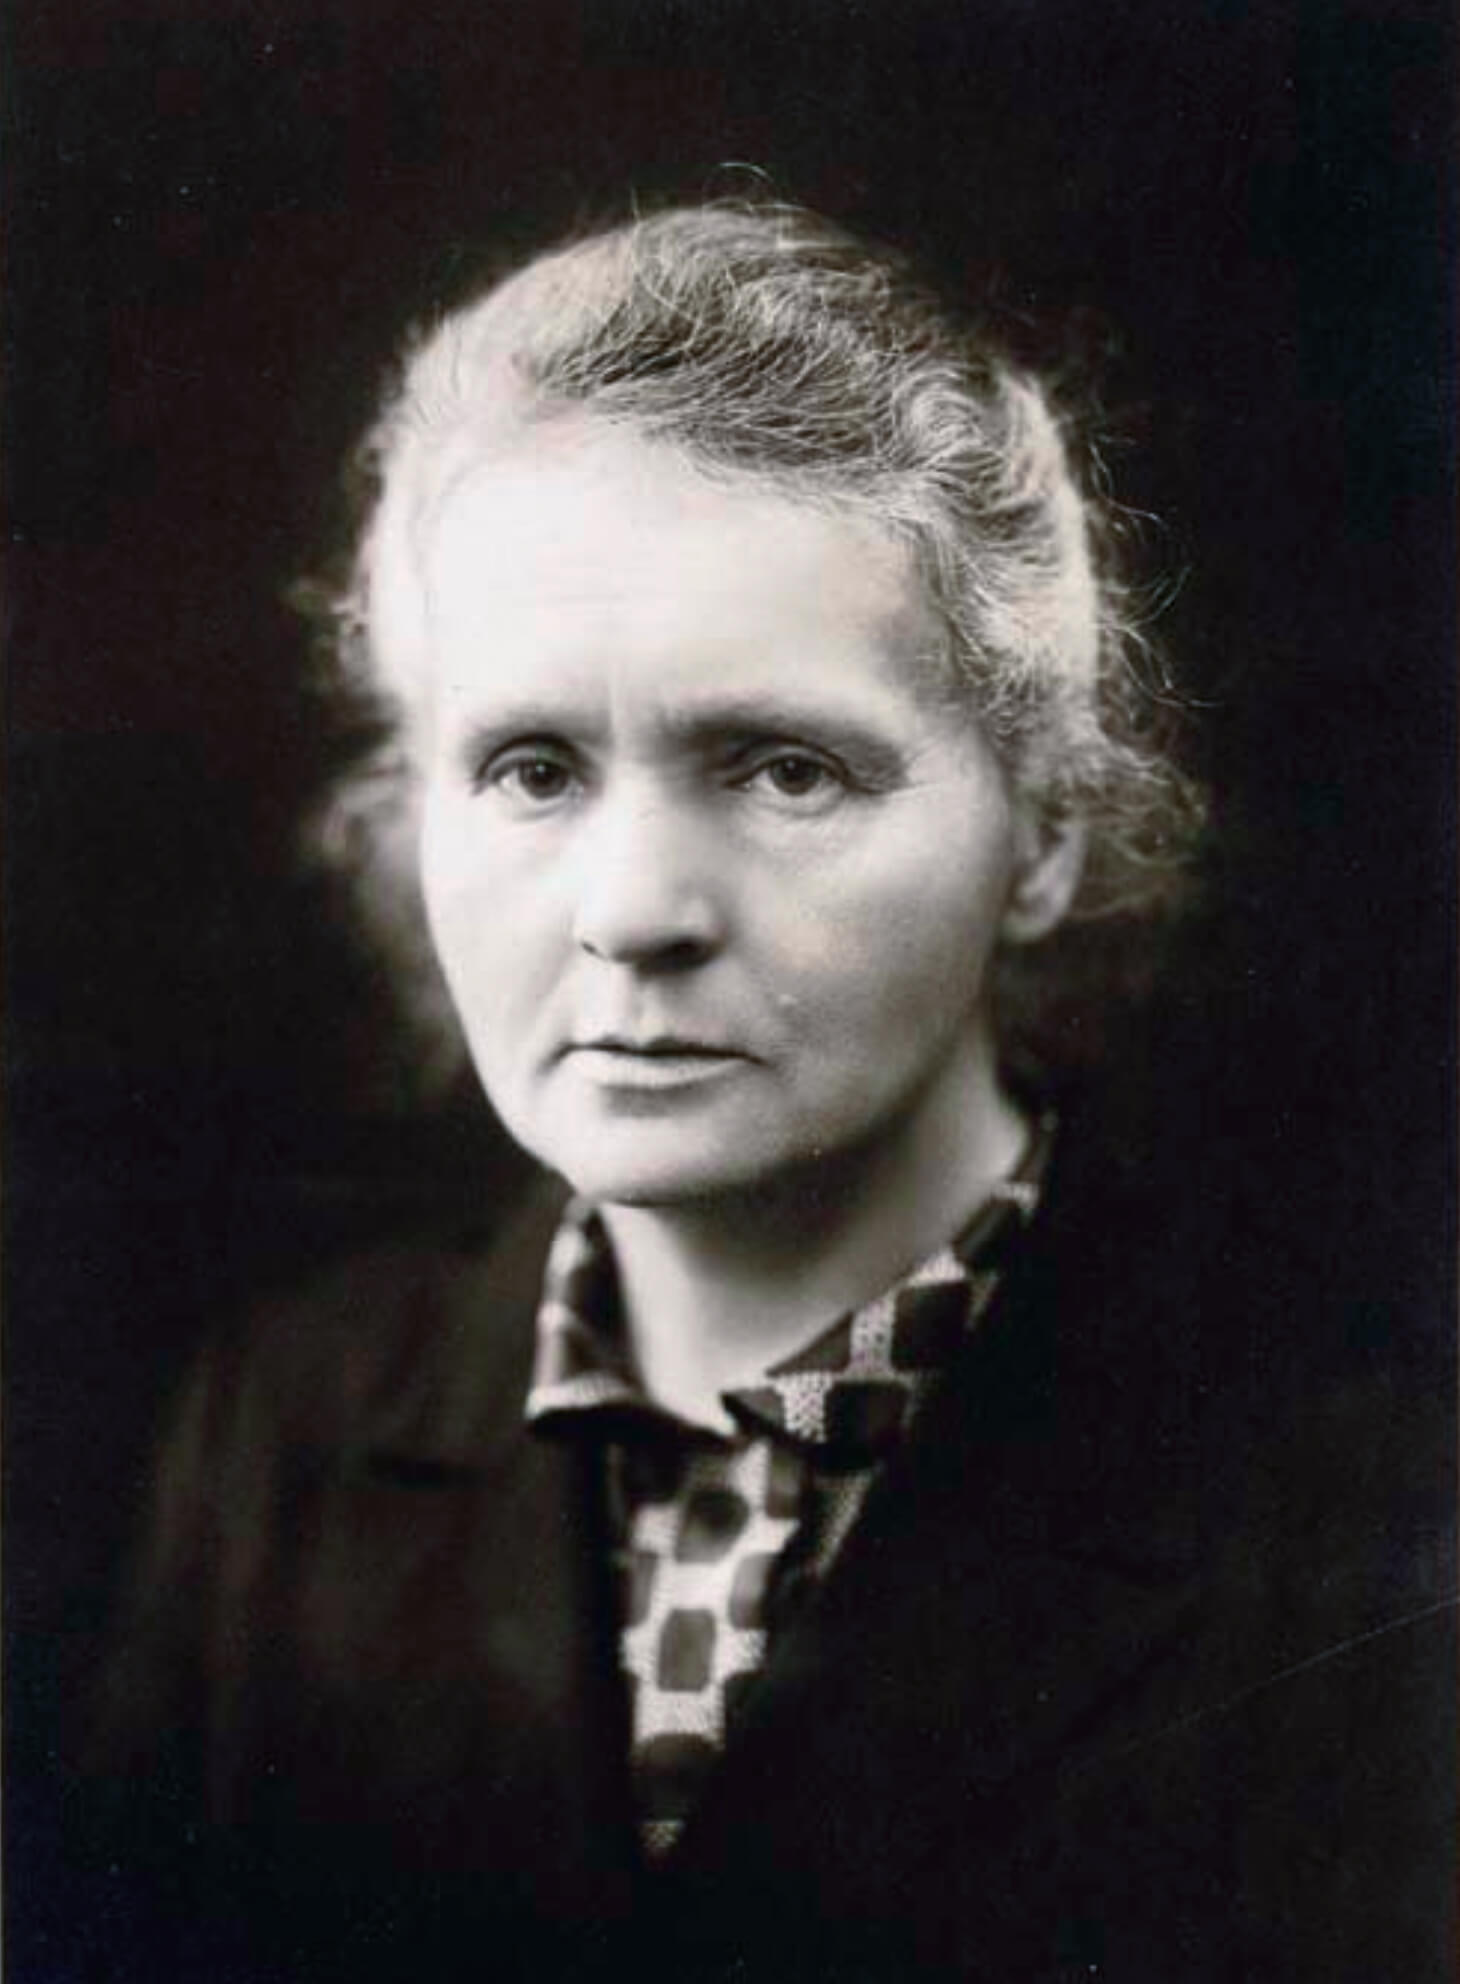 Portrait of Marie Curie